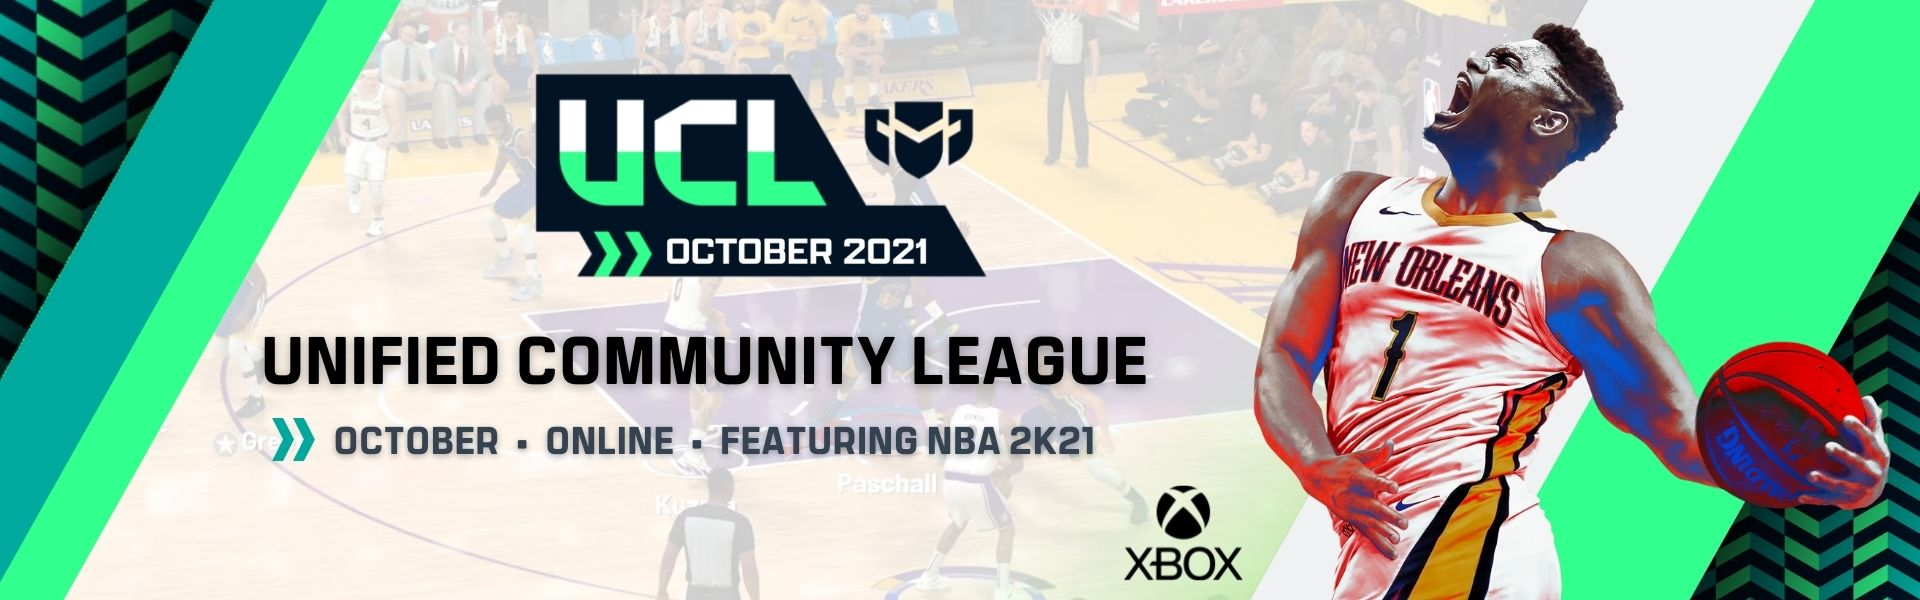 October UCL: Featuring NBA2K21 – Xbox One